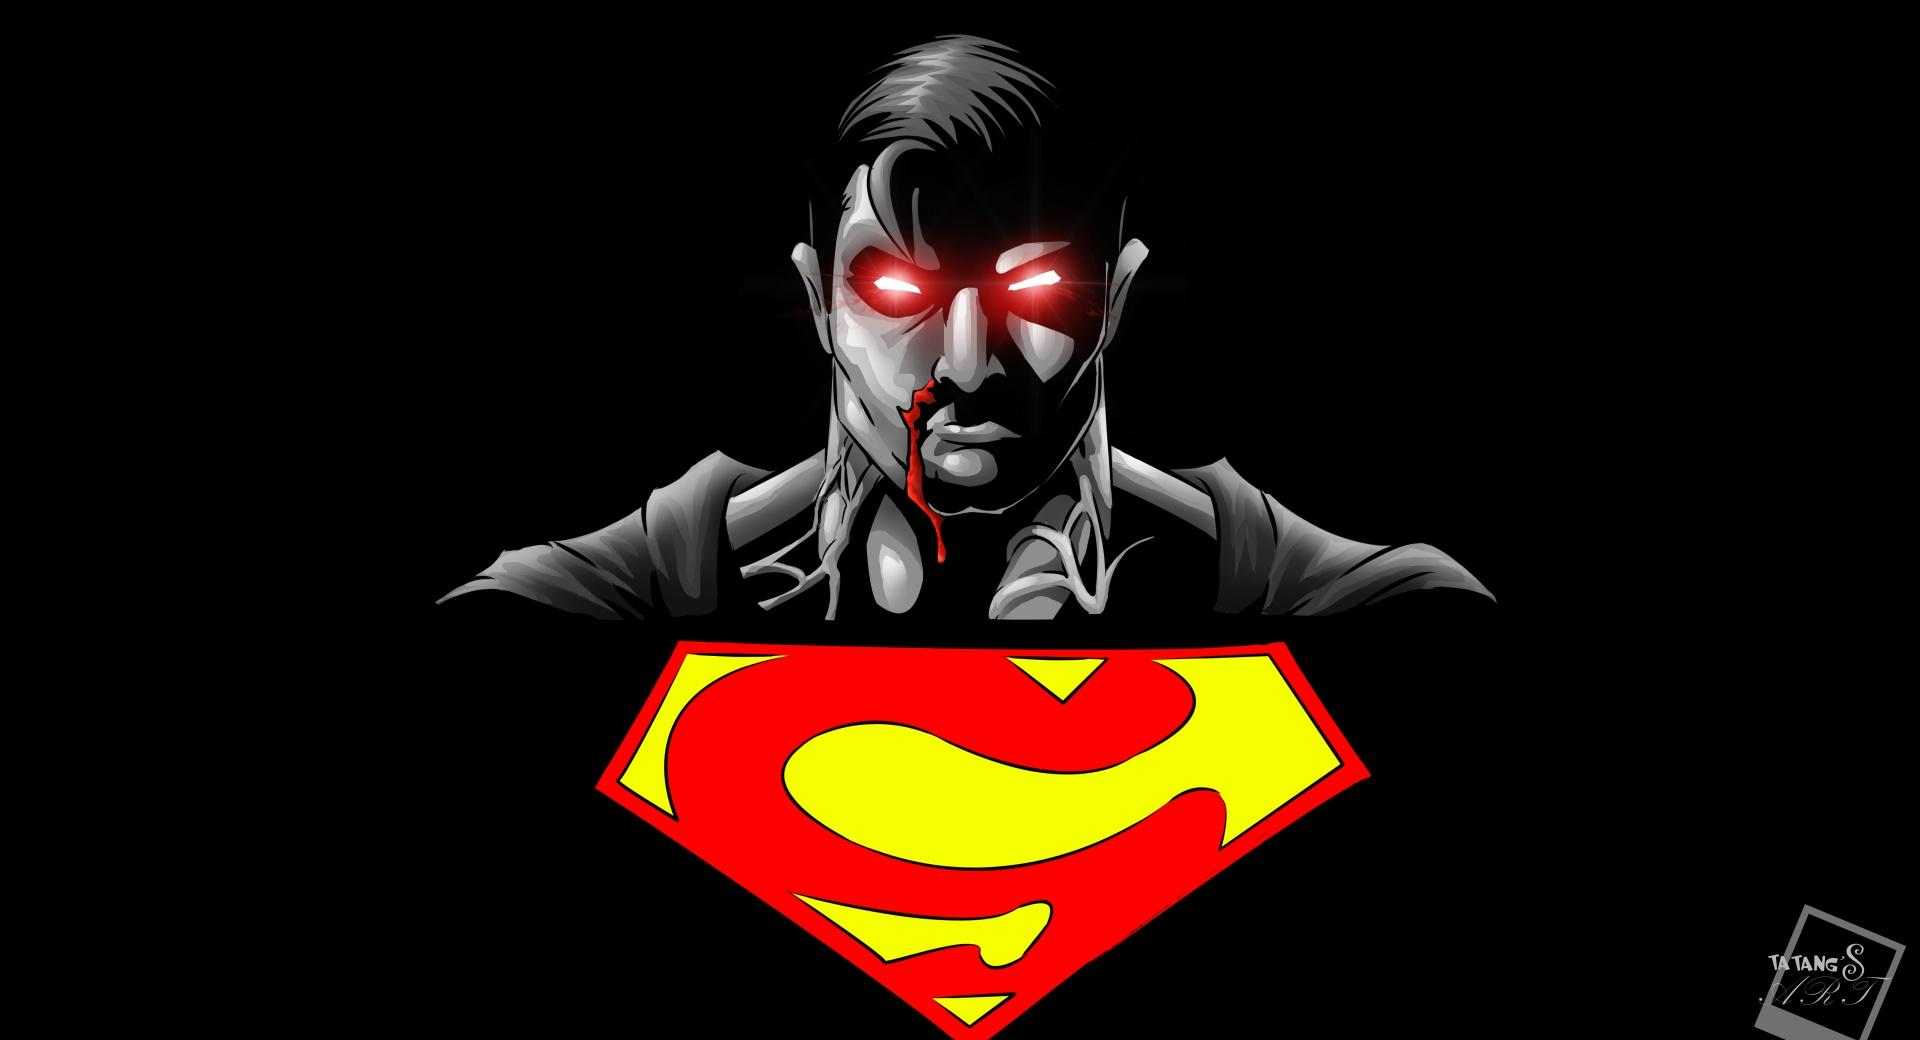 Superman by Tame Achi wallpapers HD quality